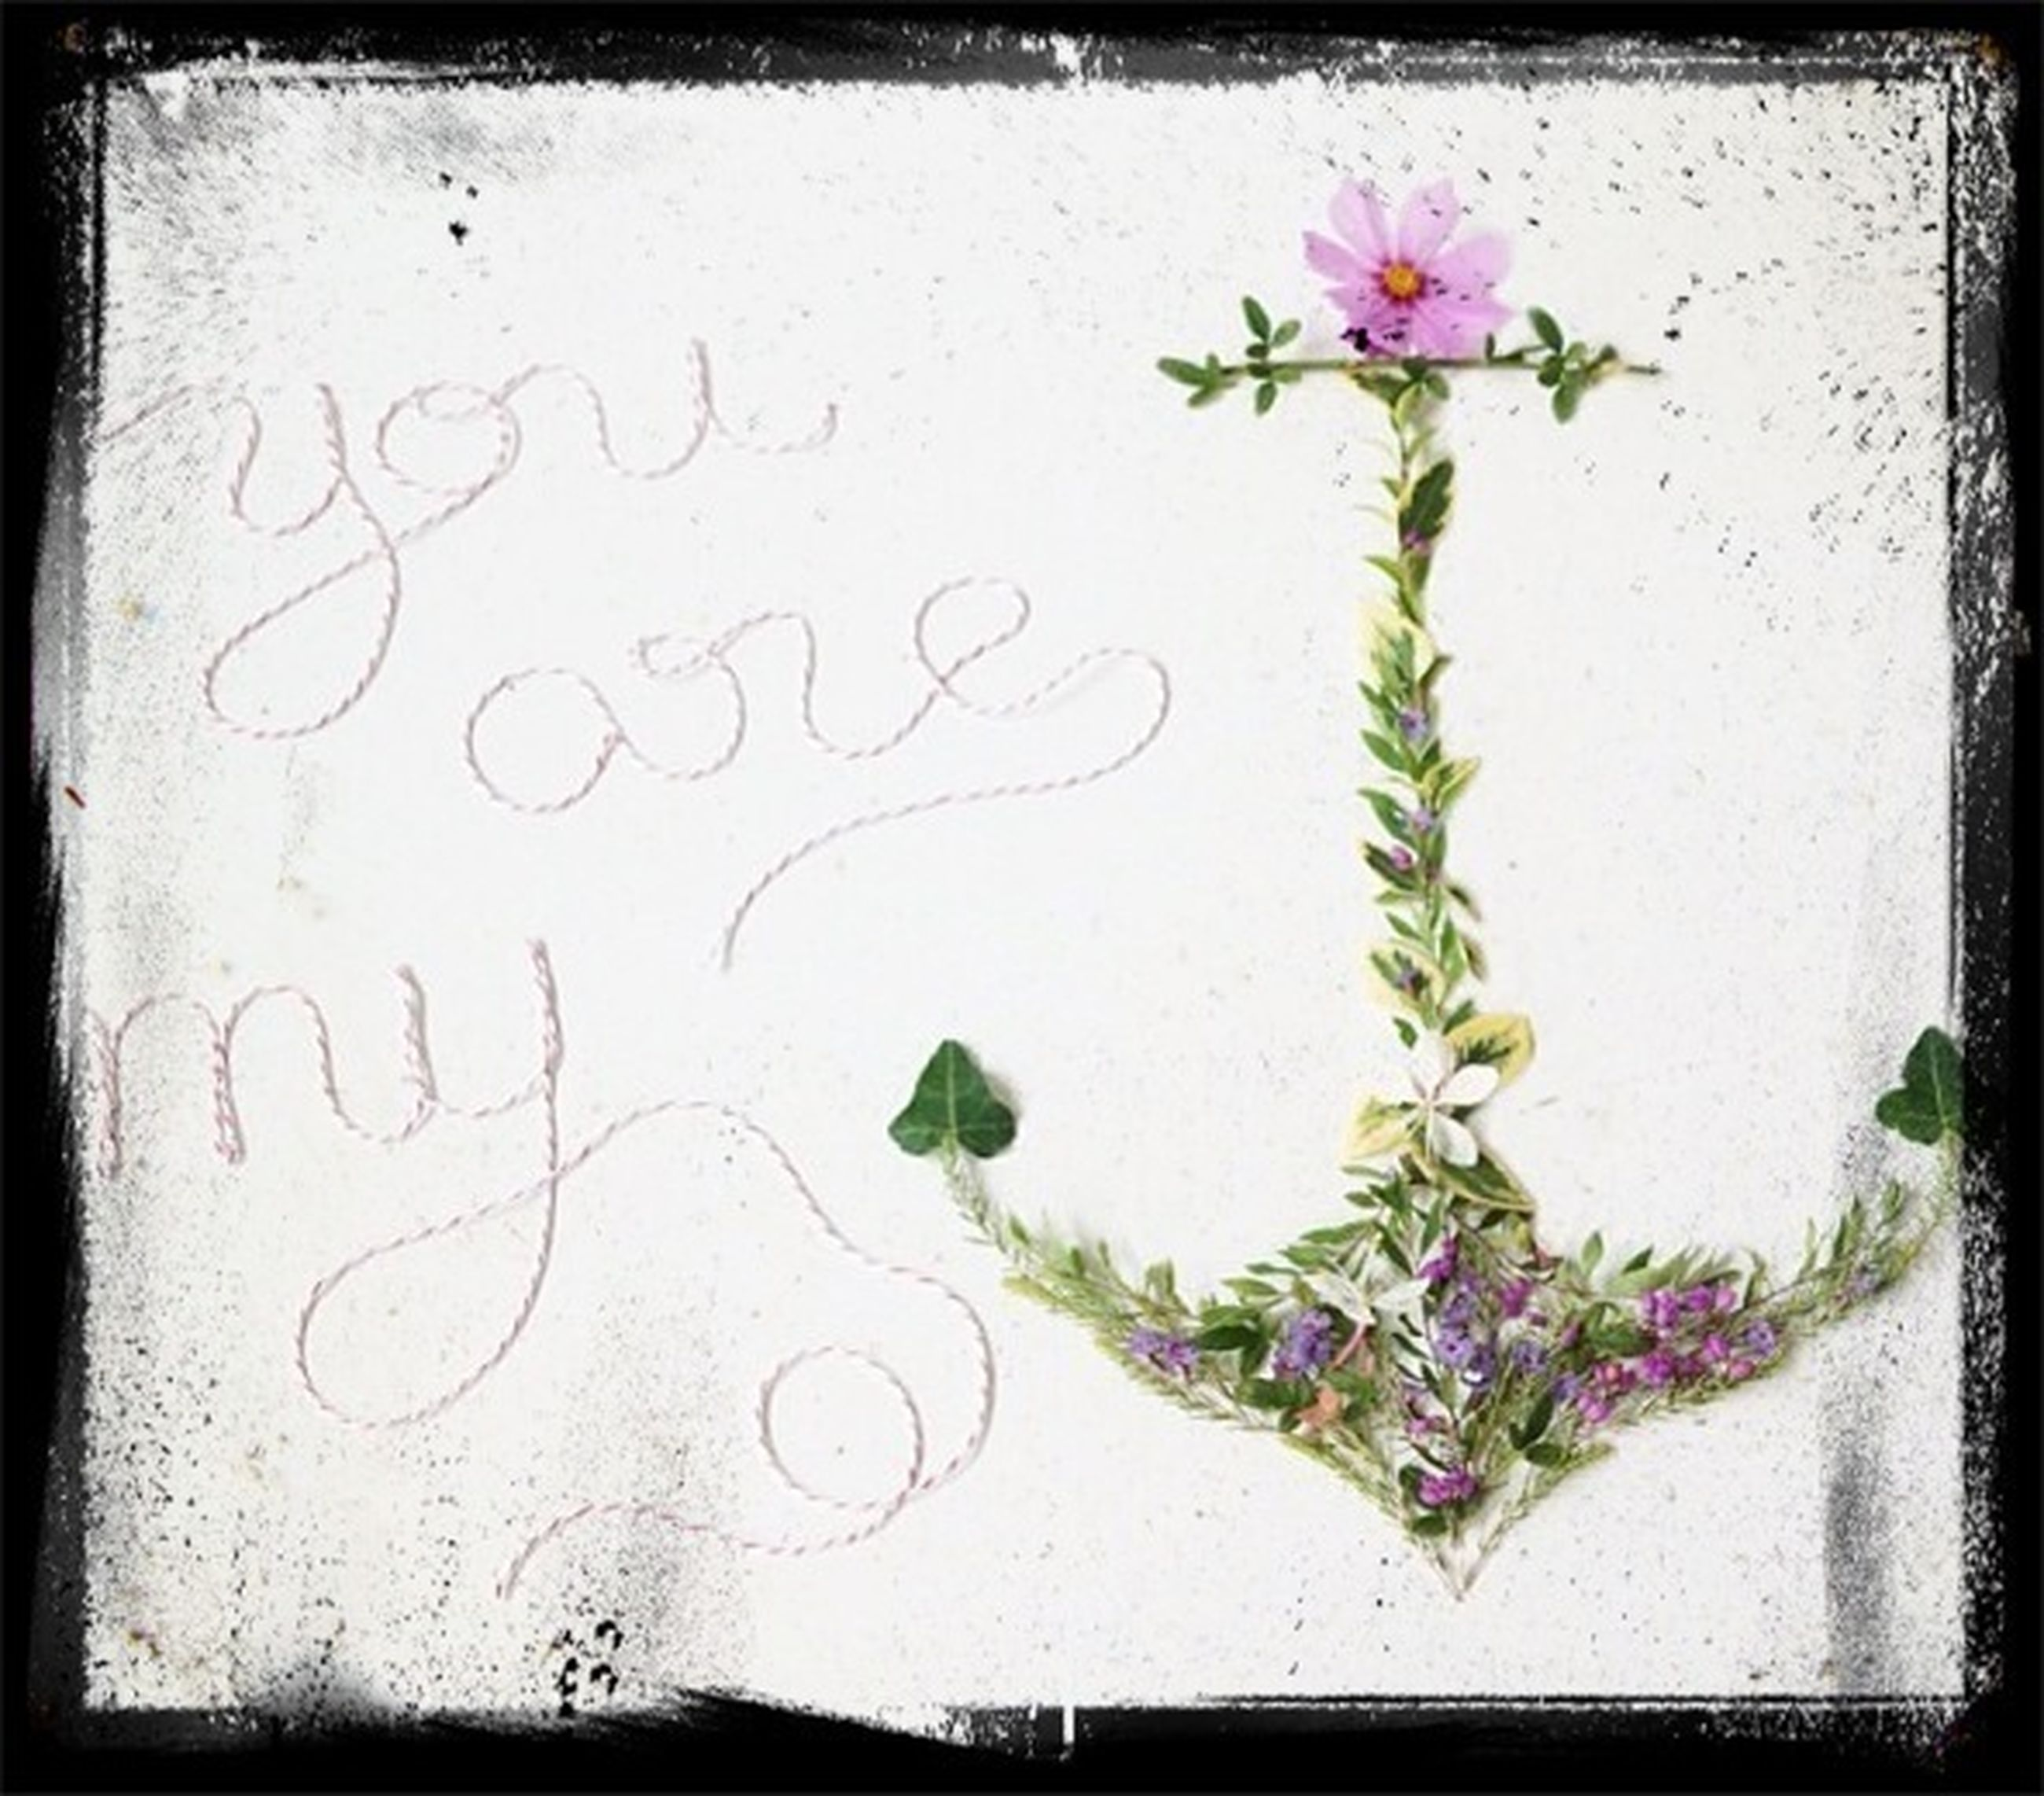 flower, indoors, freshness, text, leaf, close-up, wall - building feature, plant, western script, growth, fragility, table, wall, petal, decoration, paper, pink color, no people, green color, communication